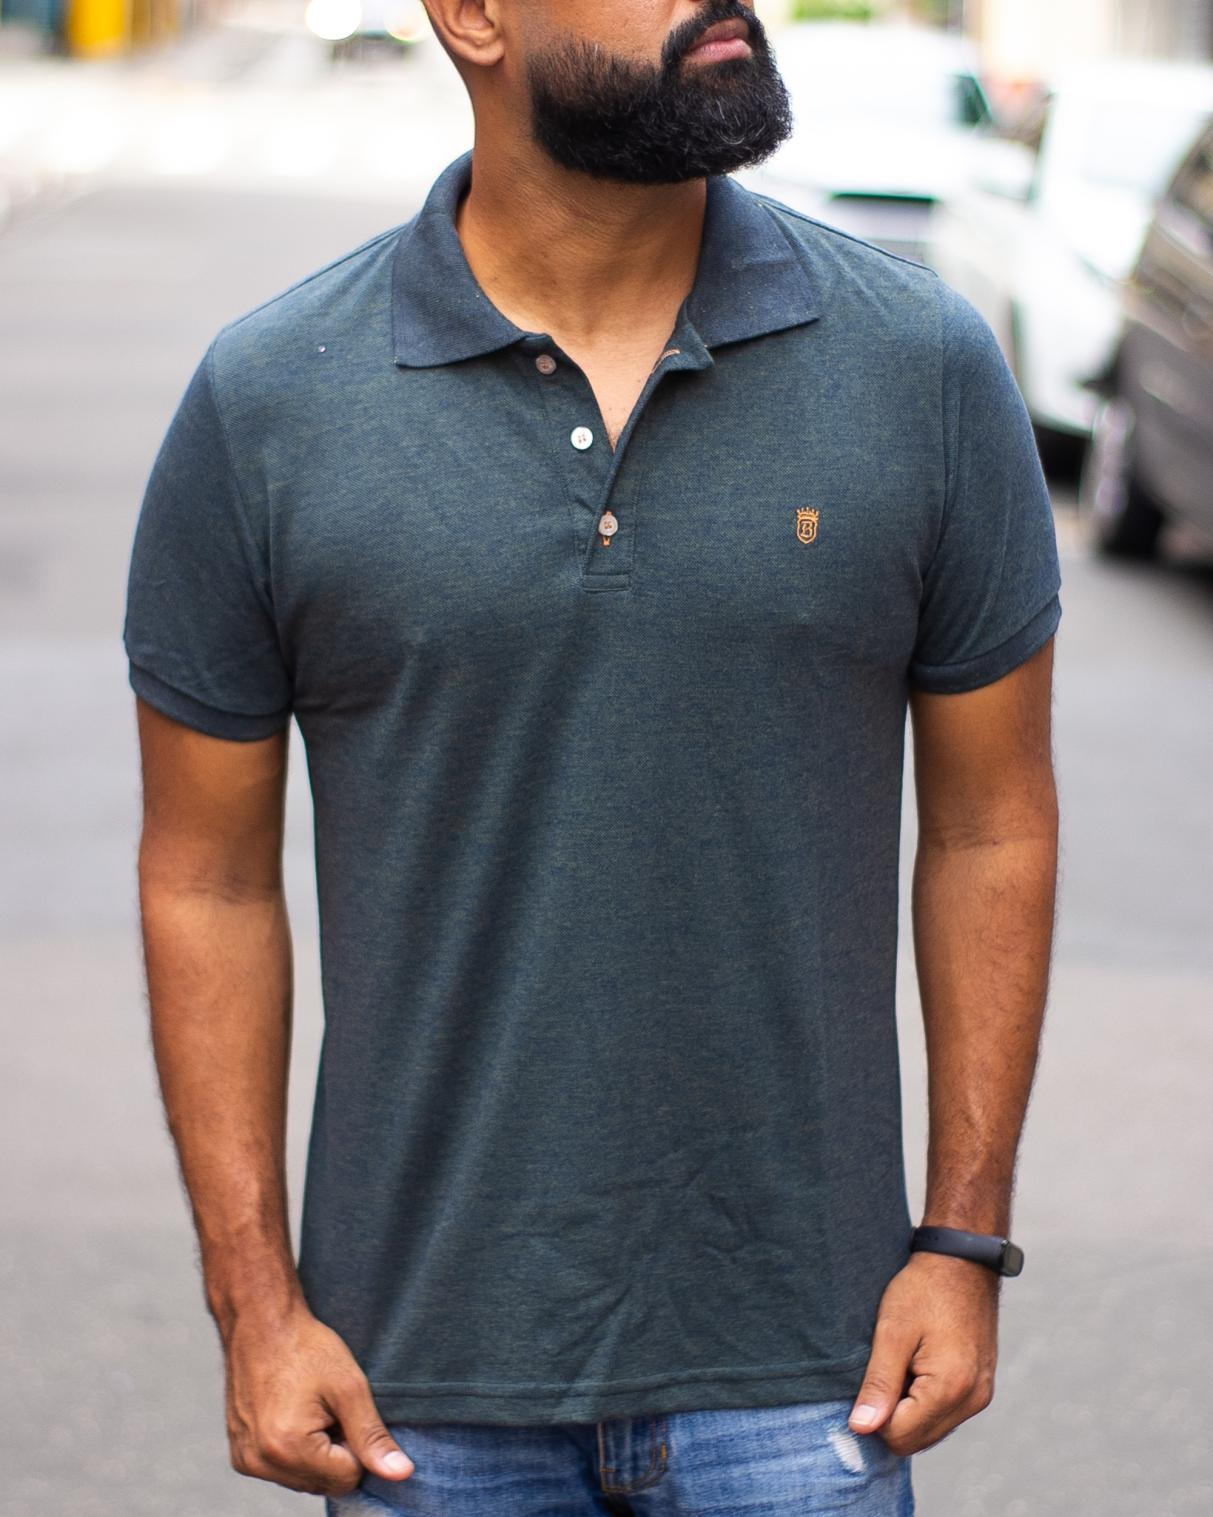 CAMISA POLO BLACK WEST BASIC TWISTER OURO/MAR